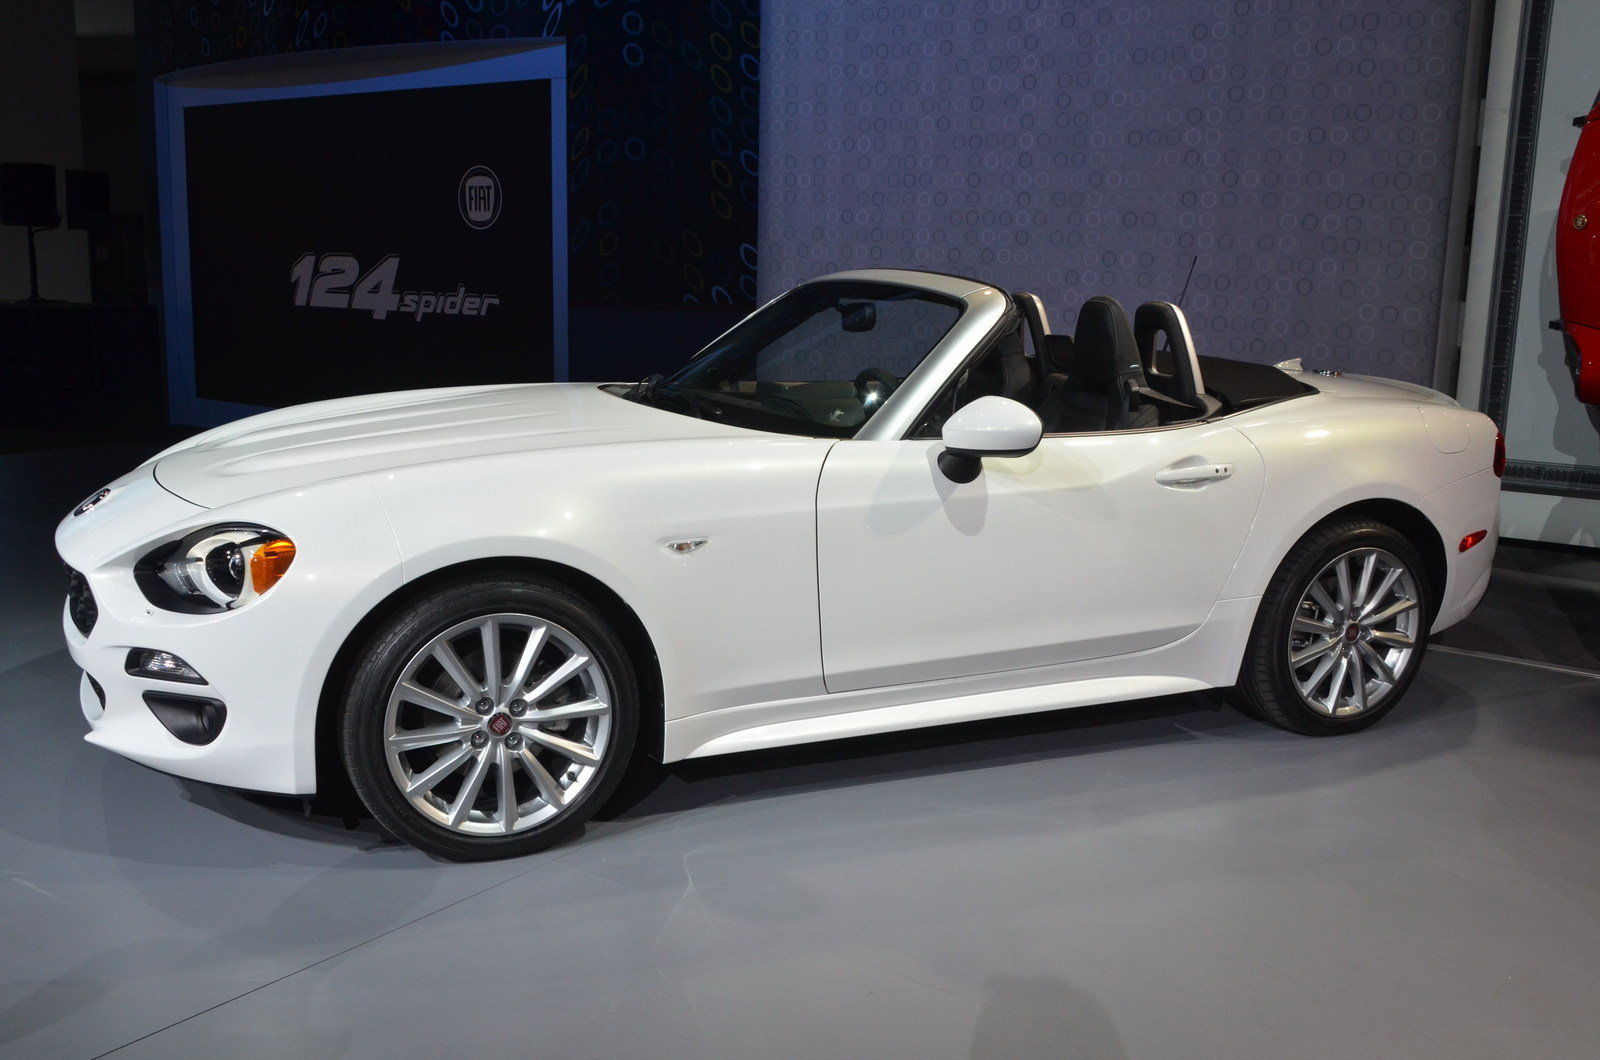 2017 fiat 124 spider picture 656609 car review top speed. Black Bedroom Furniture Sets. Home Design Ideas